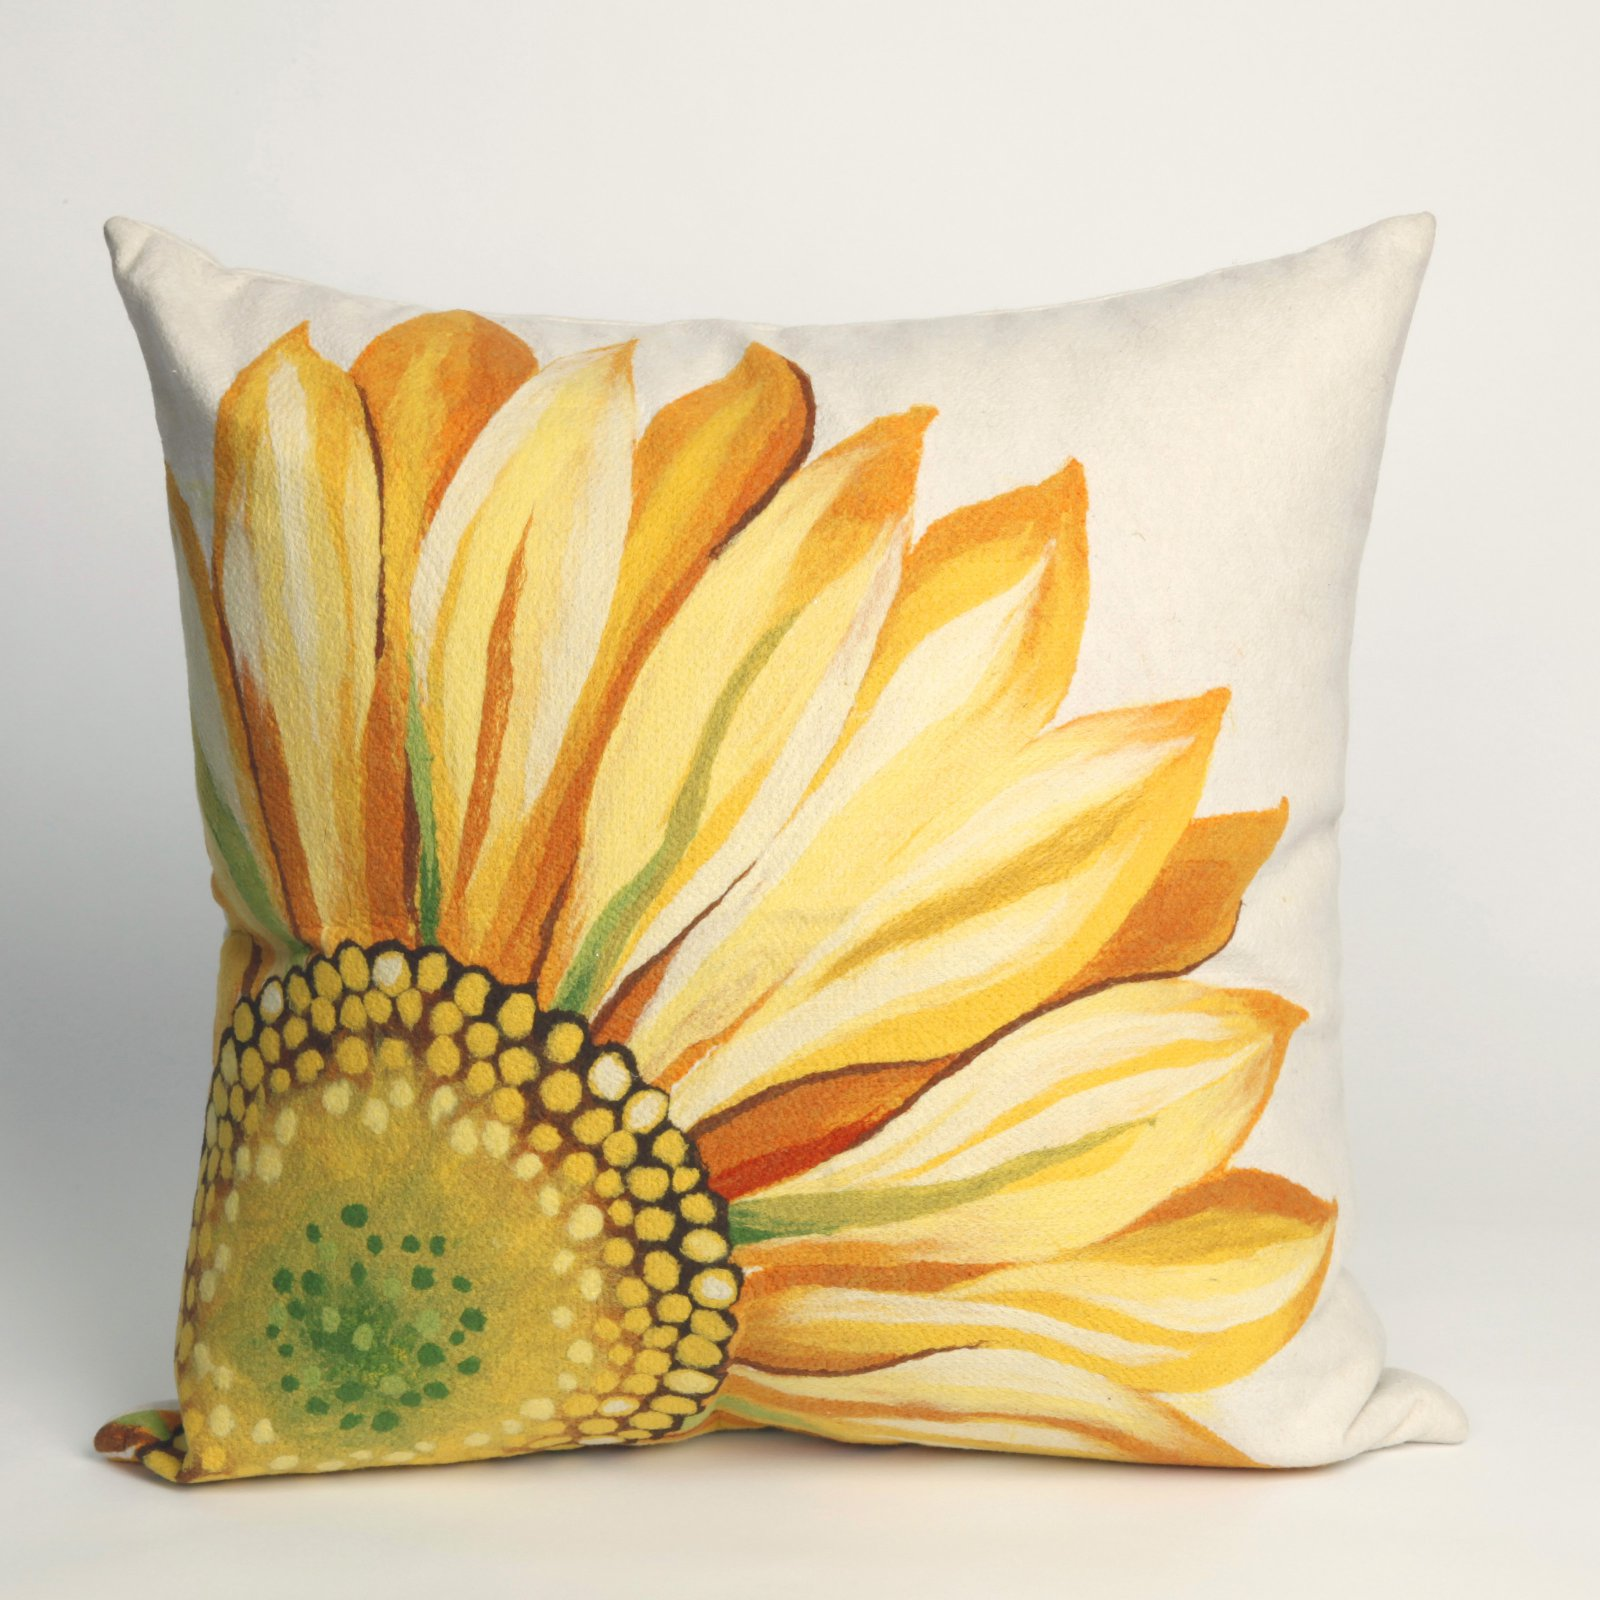 Liora Manne Sunflower Indoor / Outdoor Throw Pillow